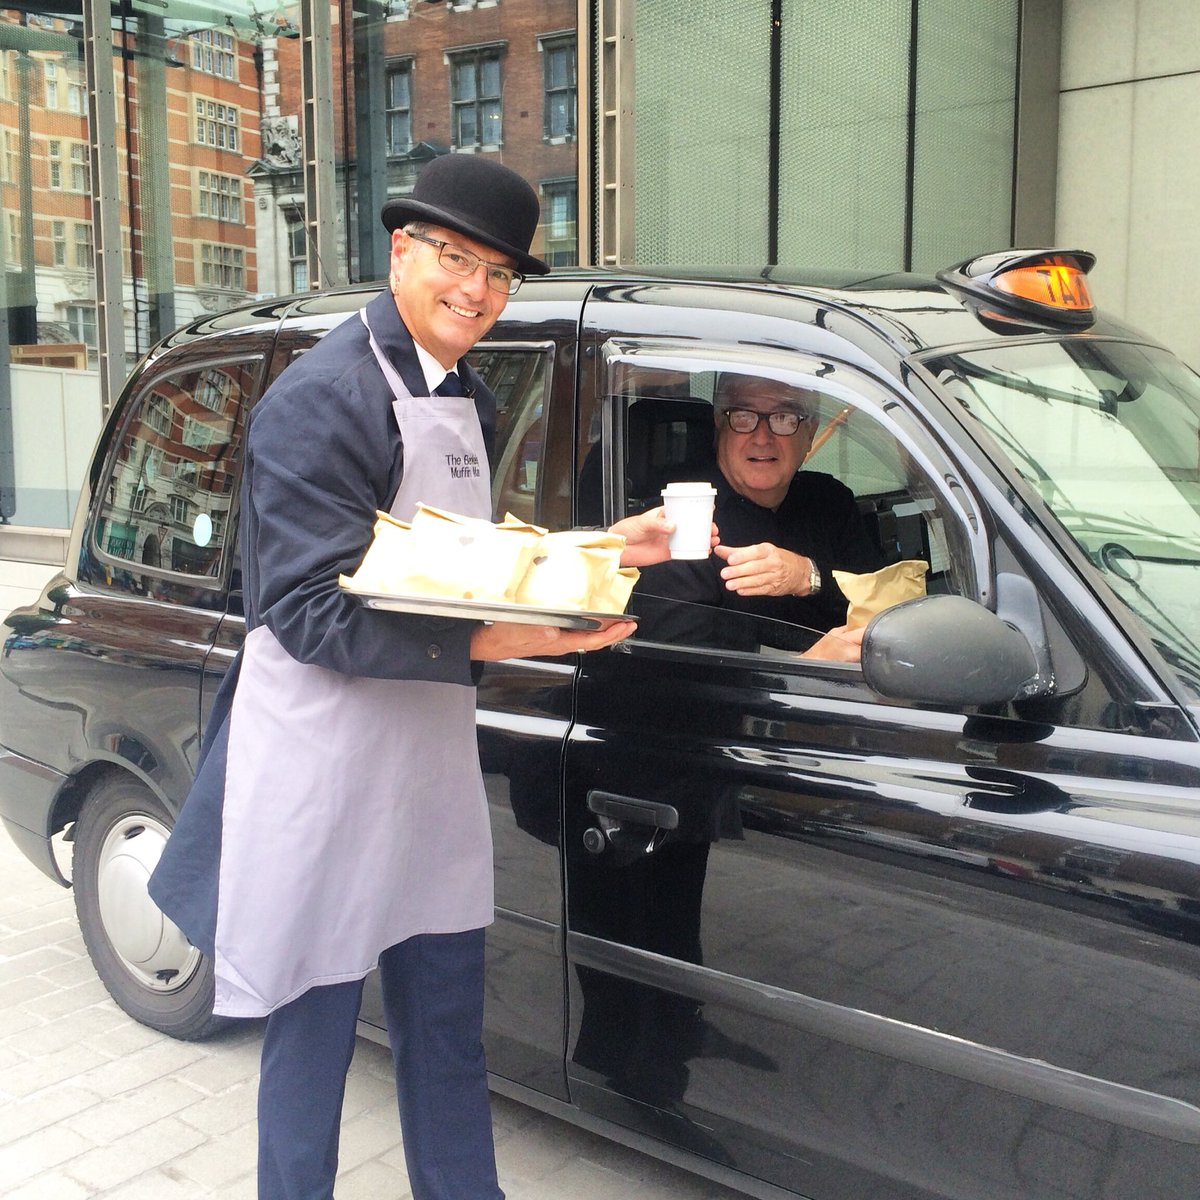 Our doorman welcoming our London Cabbies this morning, apron on & English muffins in hand! #wearelondon #blackcab https://t.co/yhzMUFKer5